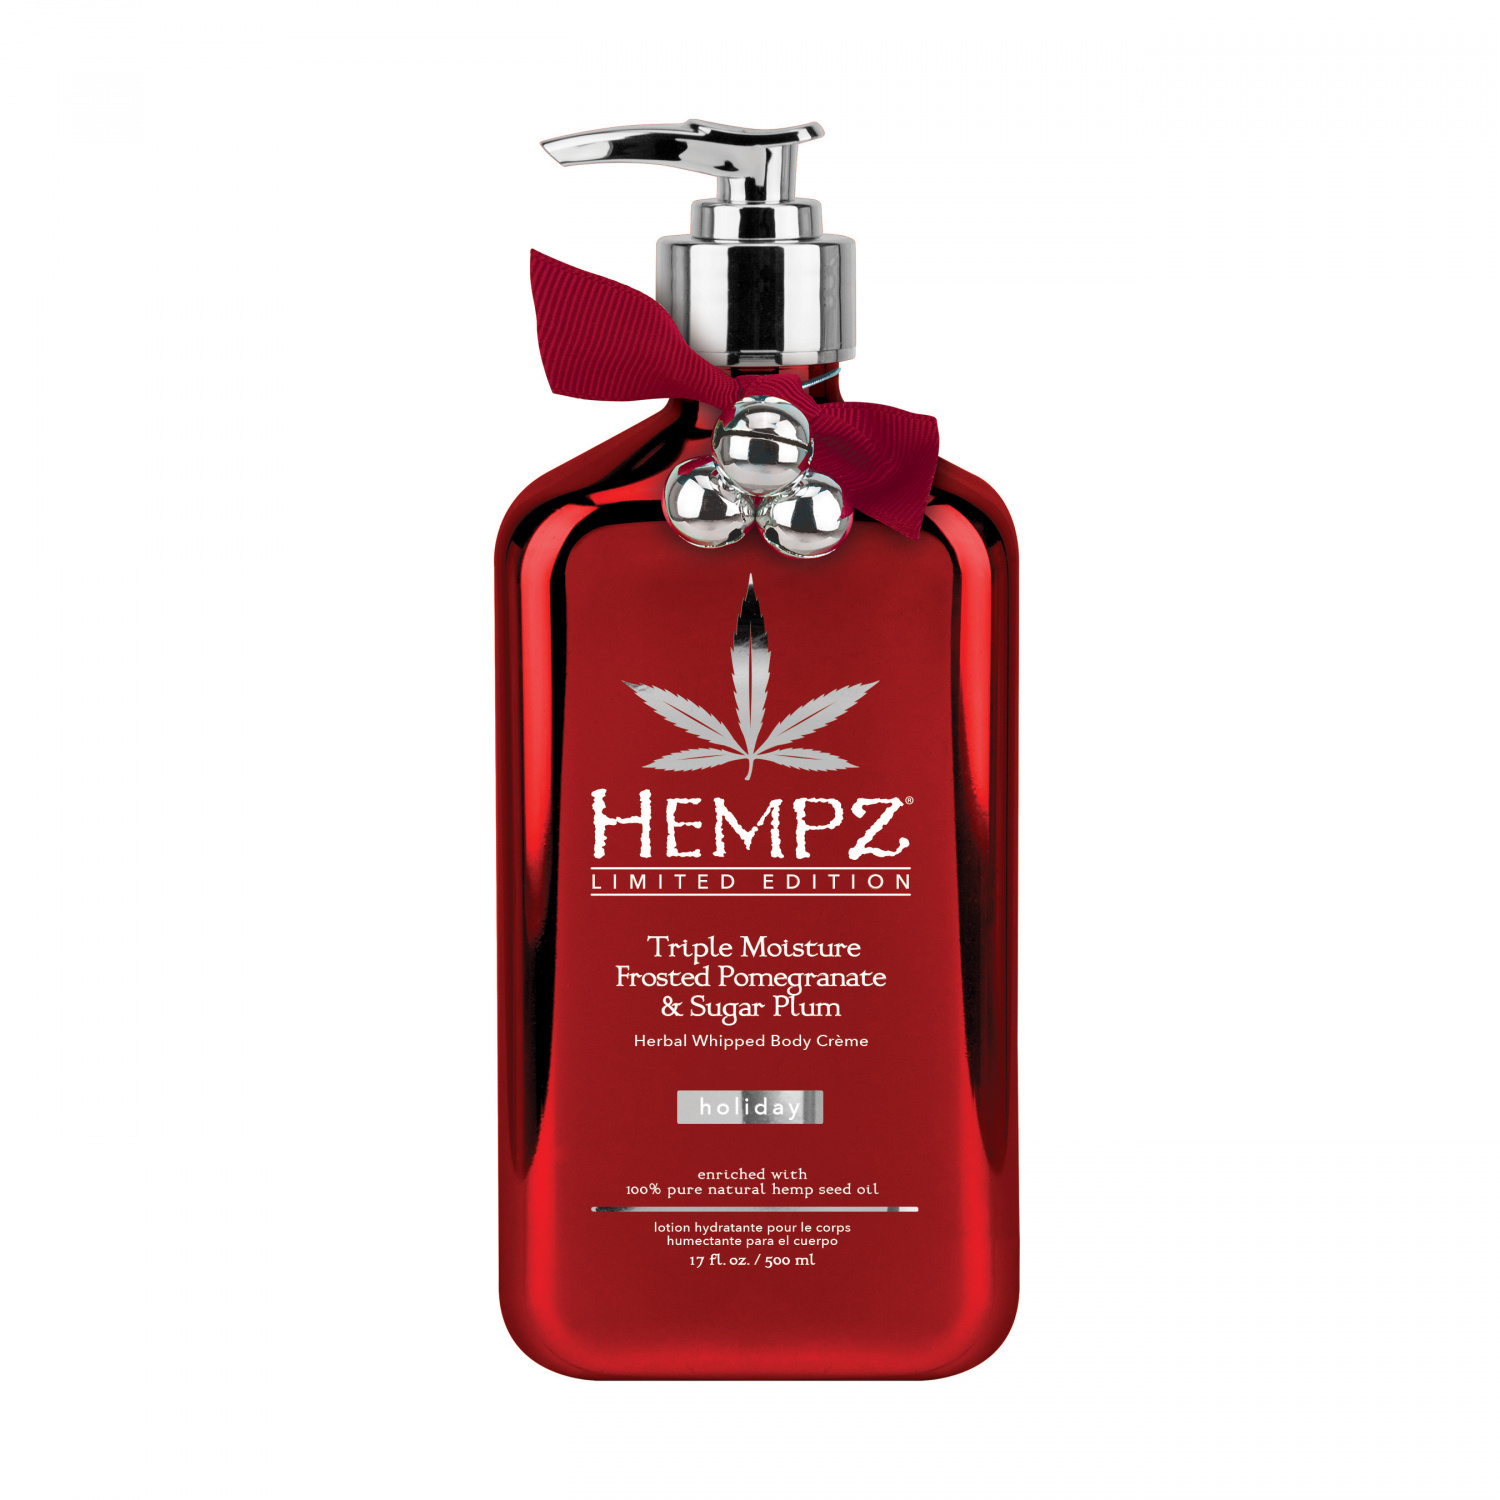 Hempz Herbal Whipped Body Creme Triple Moisture: Frosted Pomegranate and Sugar Plum 500ml.